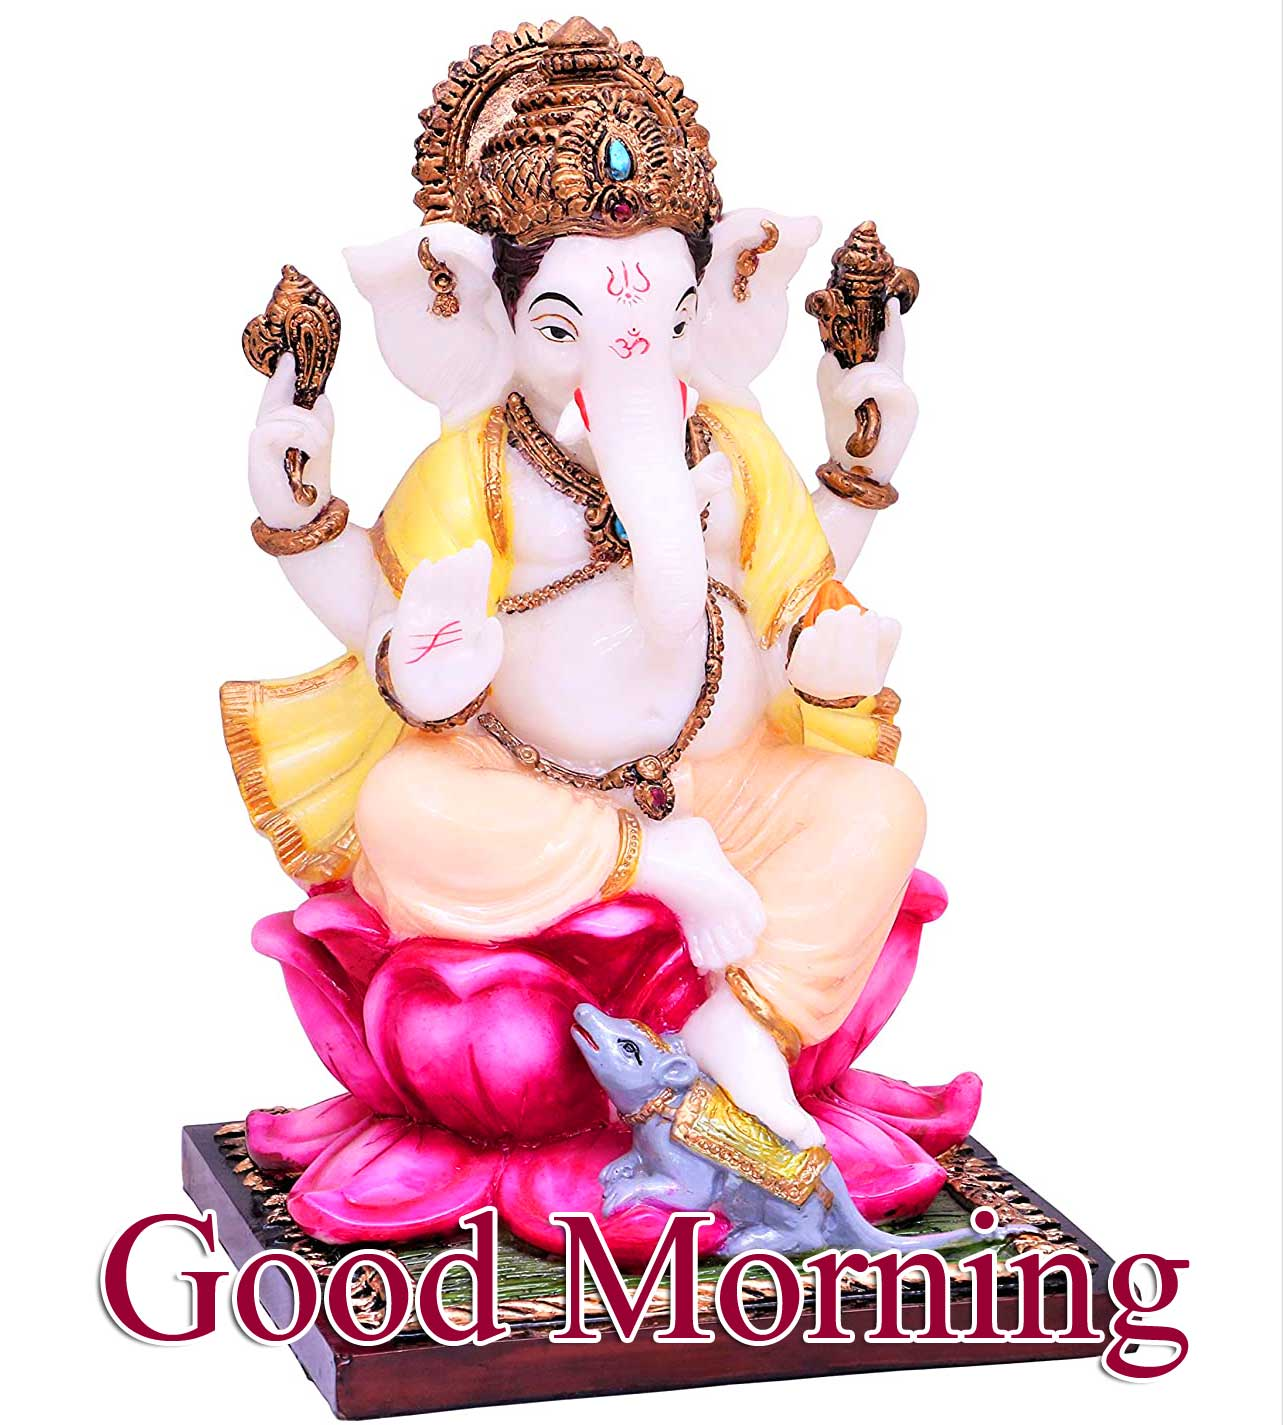 Latest Updated Good Morning Ganpati Bappa Images Download